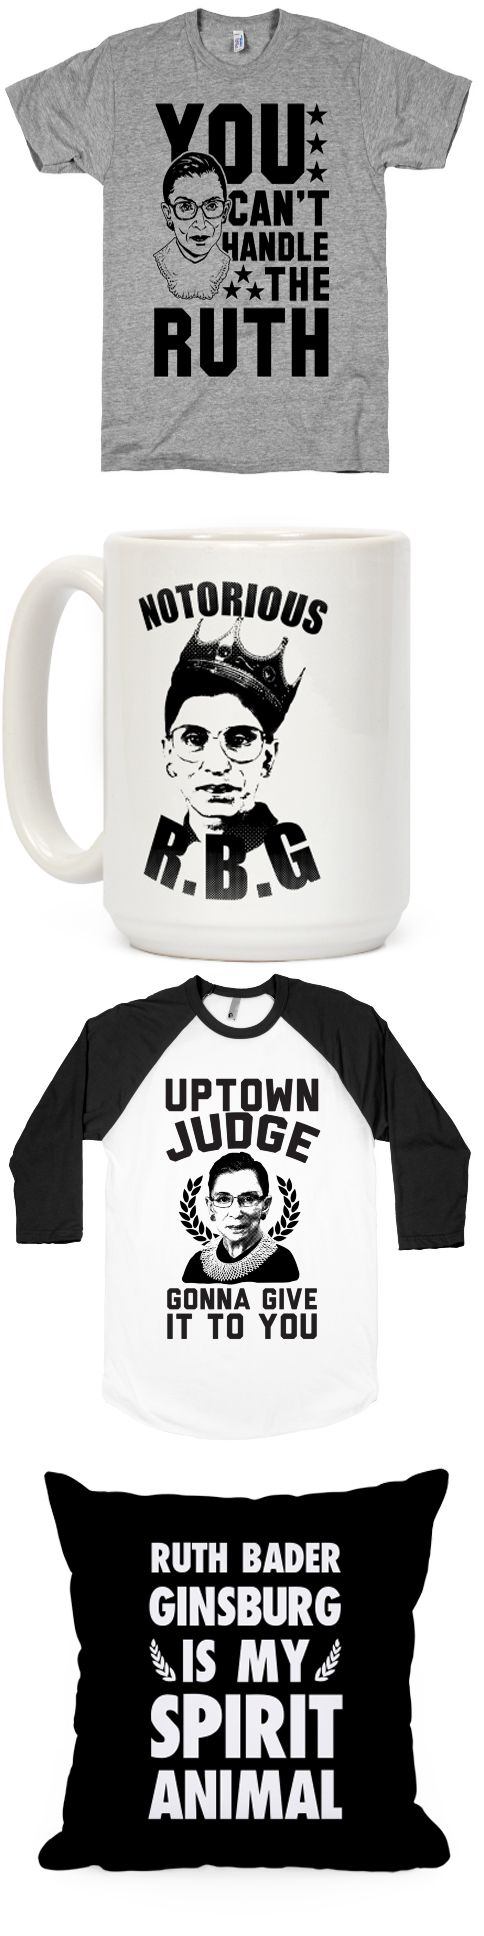 See if you can handle the Ruth with this collection of RBG designs.